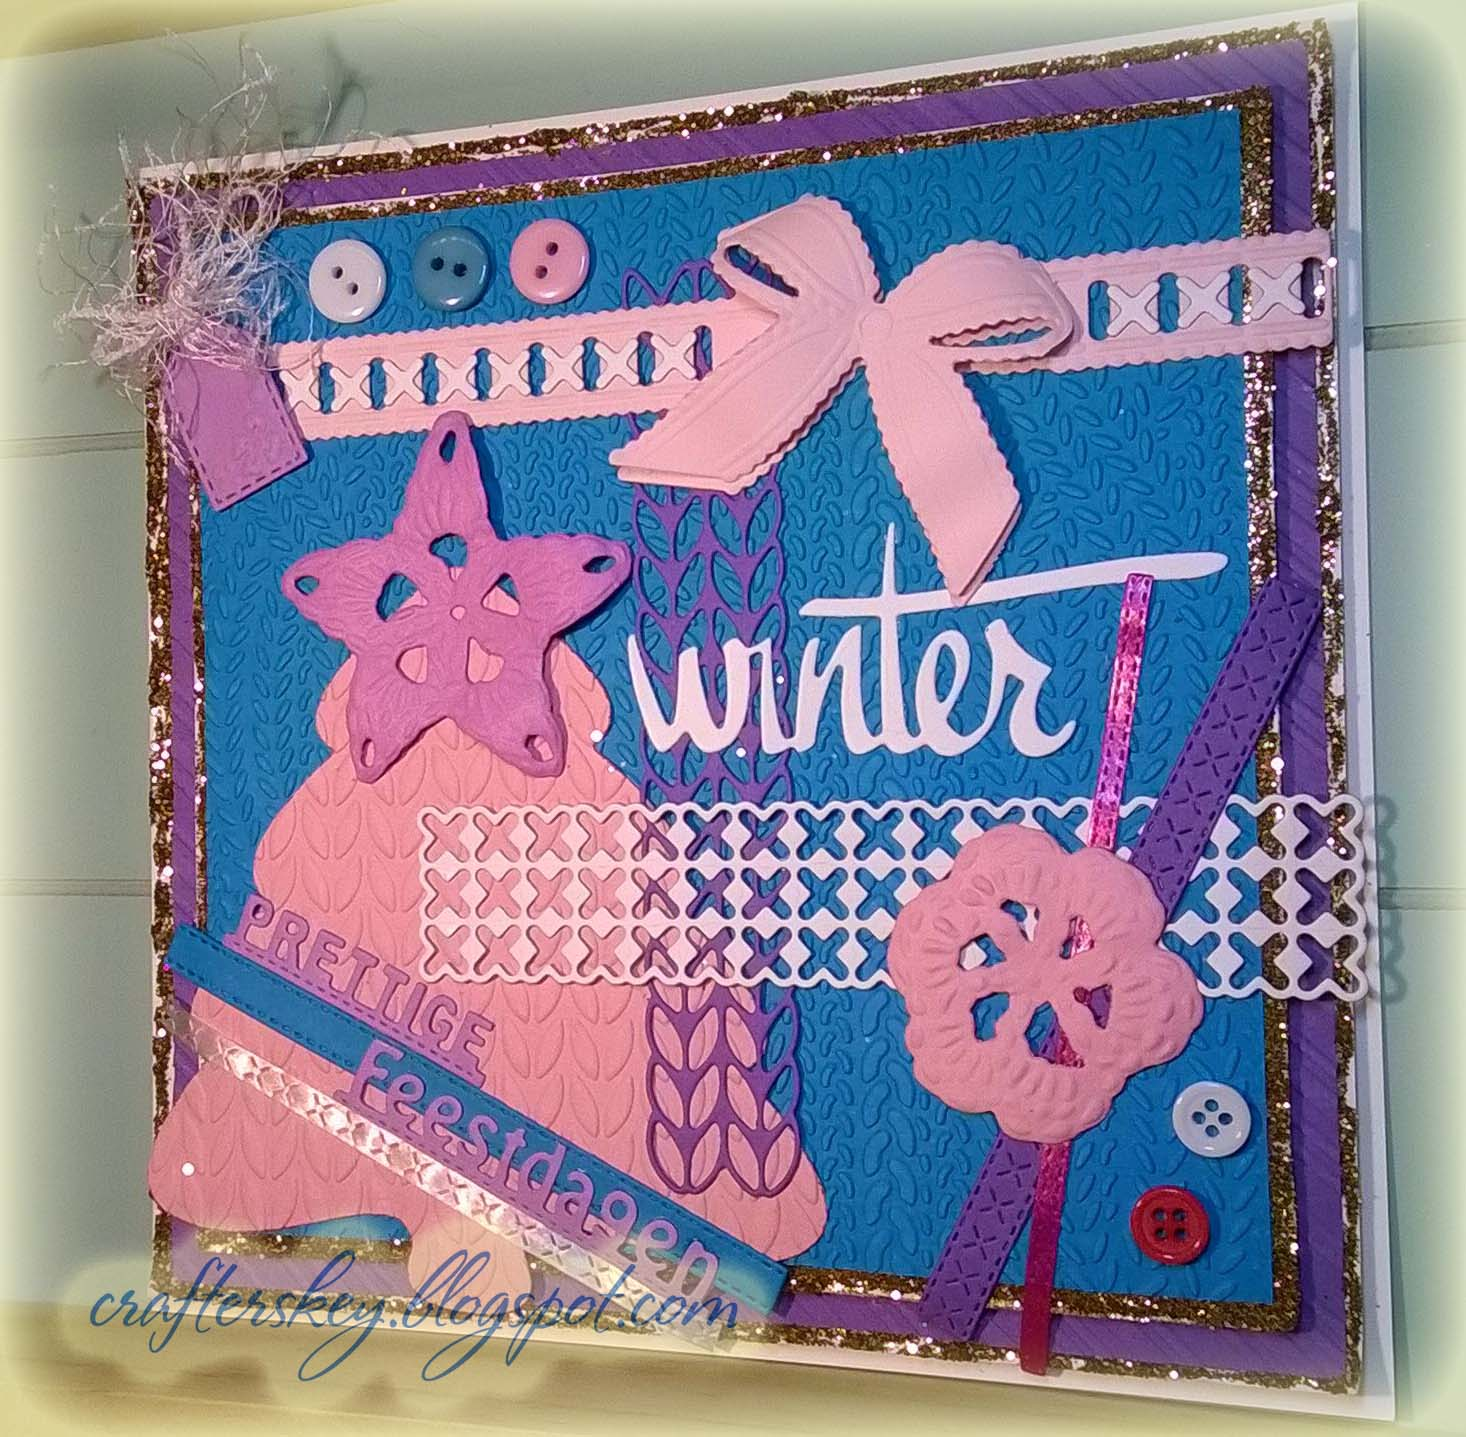 Knitting Patterns For Christmas Cards : Crafters Key: Knitted Christmas Card